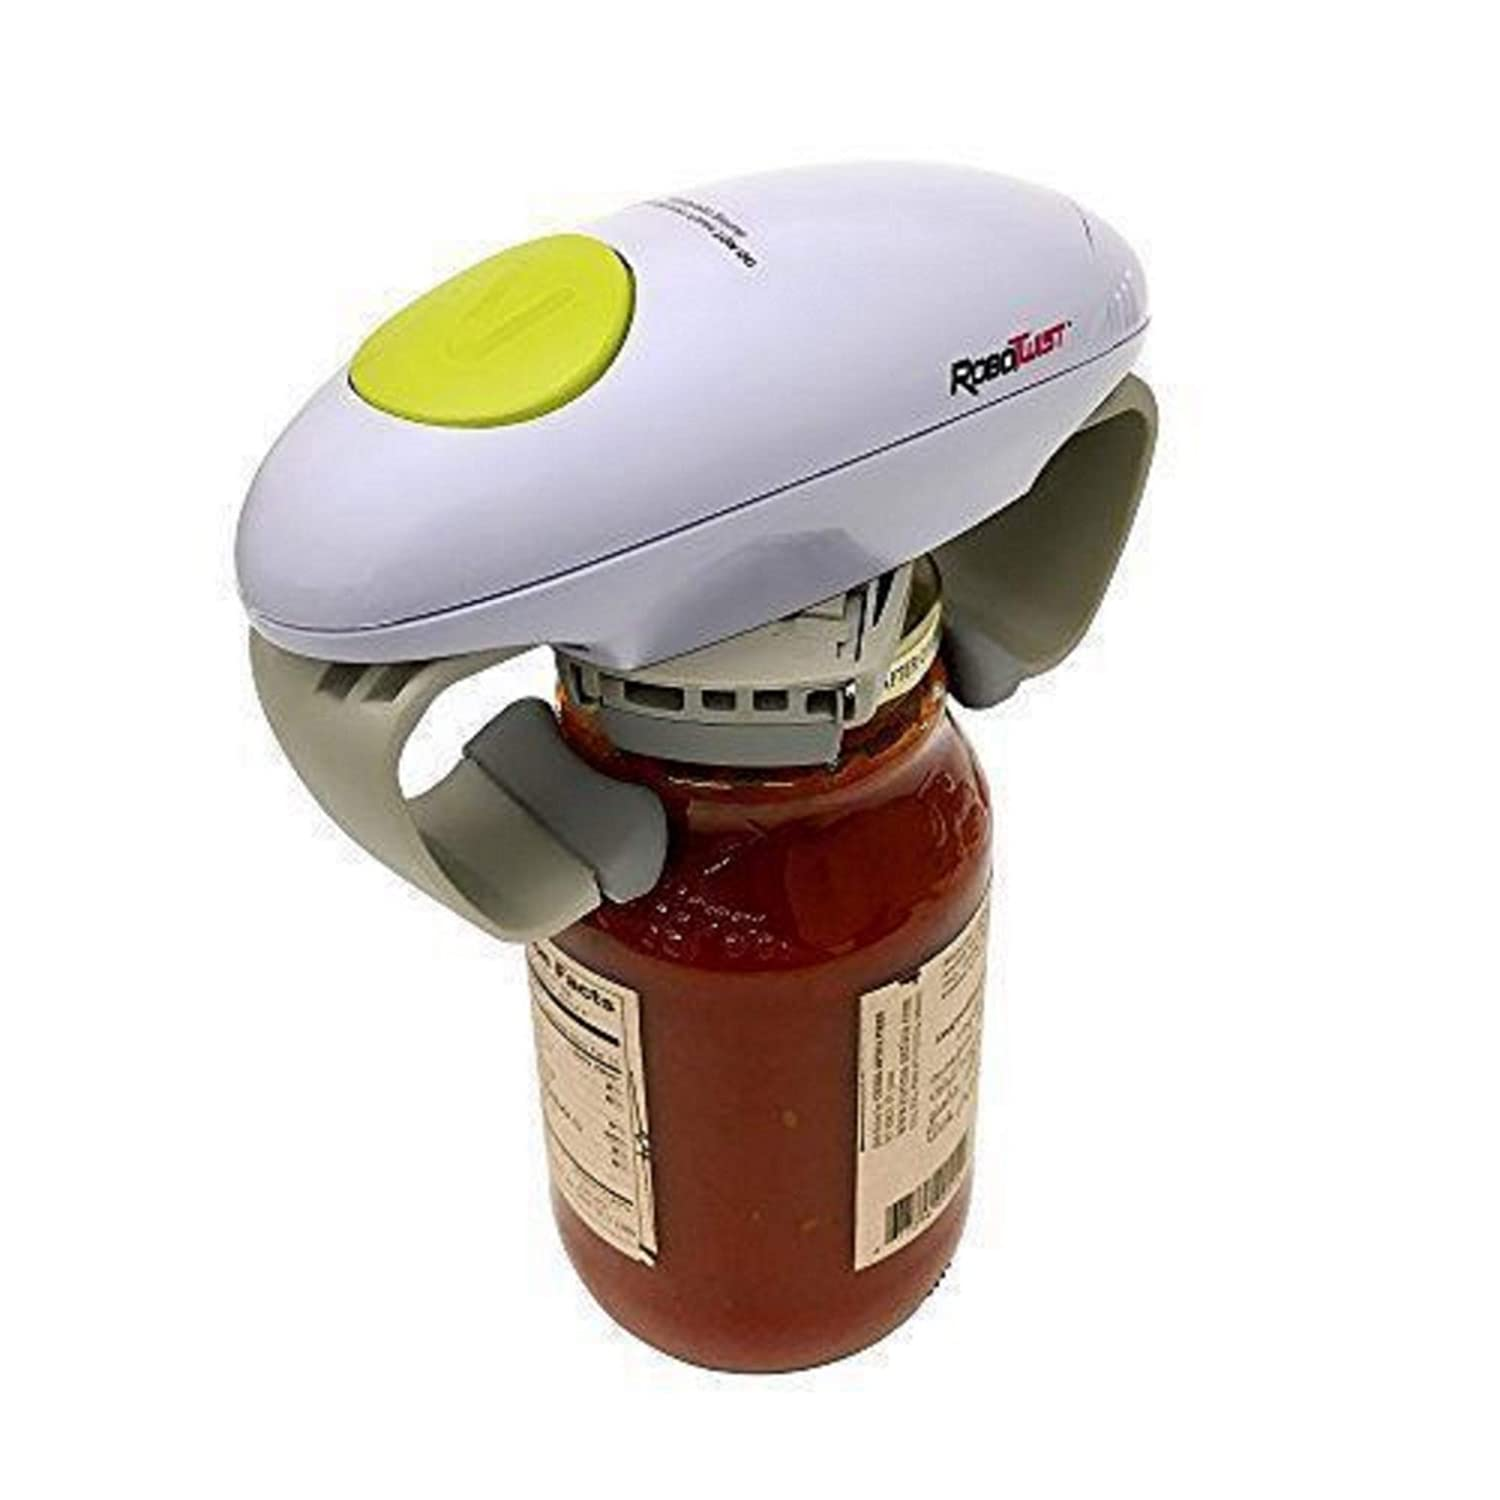 Robotwist Automatic, Adjustable Easy Open Jar Opener by Robo Twist Emson 1014